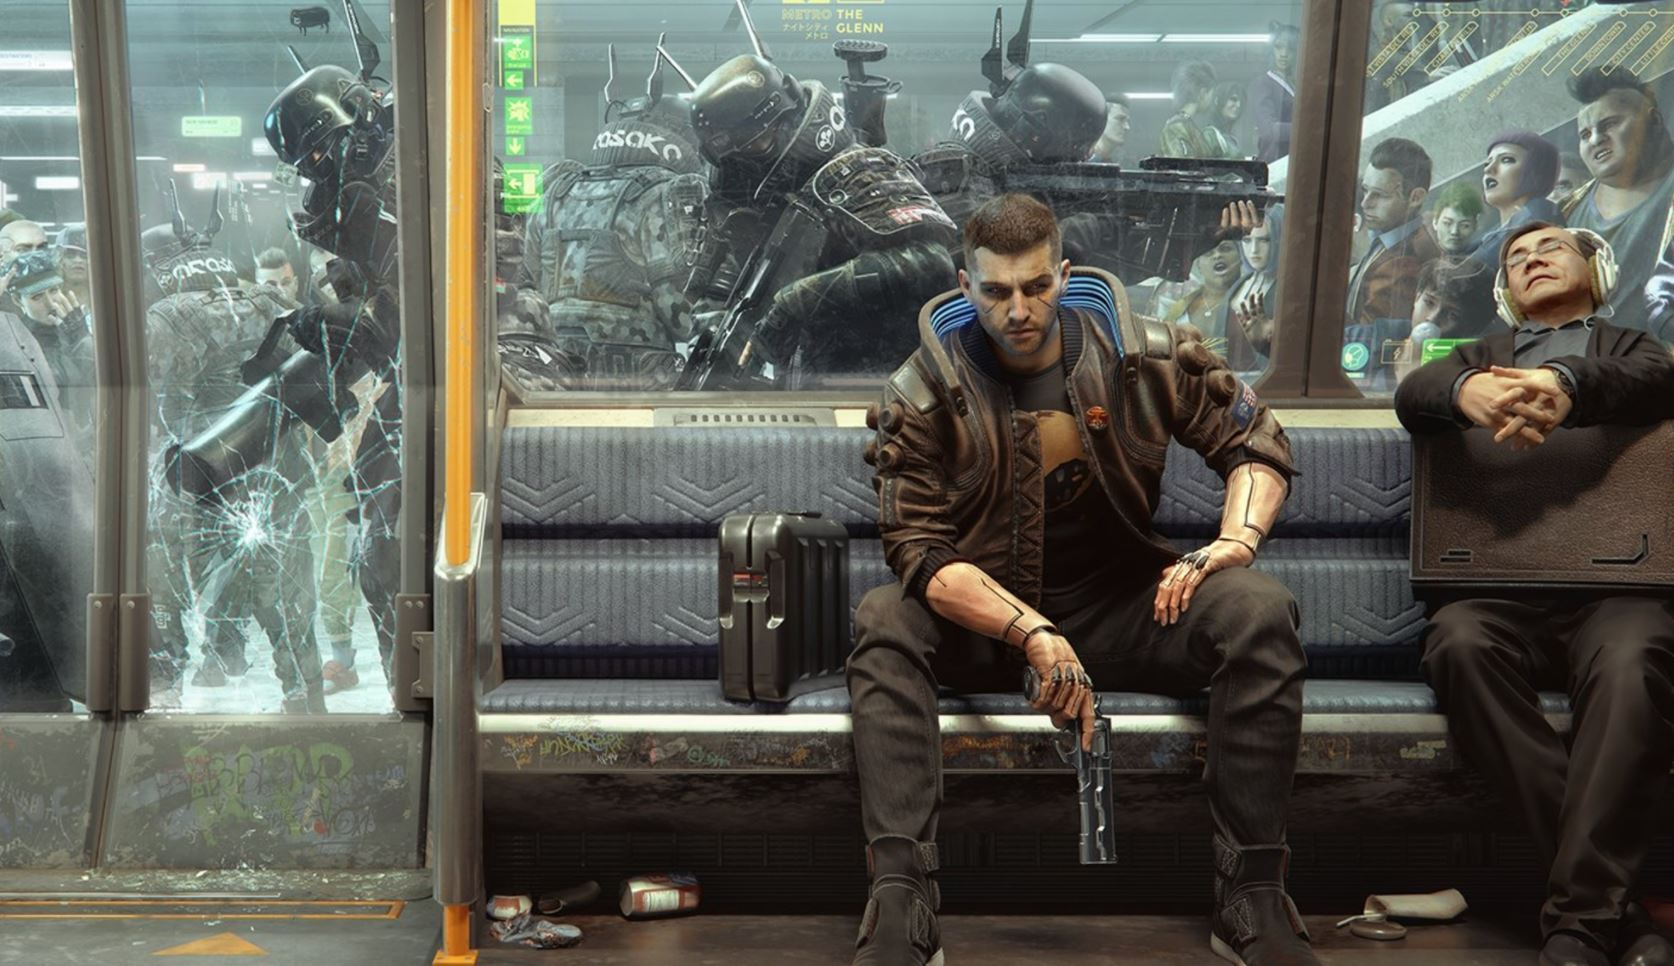 cyberpunk-2077-early-ps5-ps4-hands-on-impressions-grand-theft-auto-on-steroids-an-engrossing-world-with-horrific-ps4-performance-1